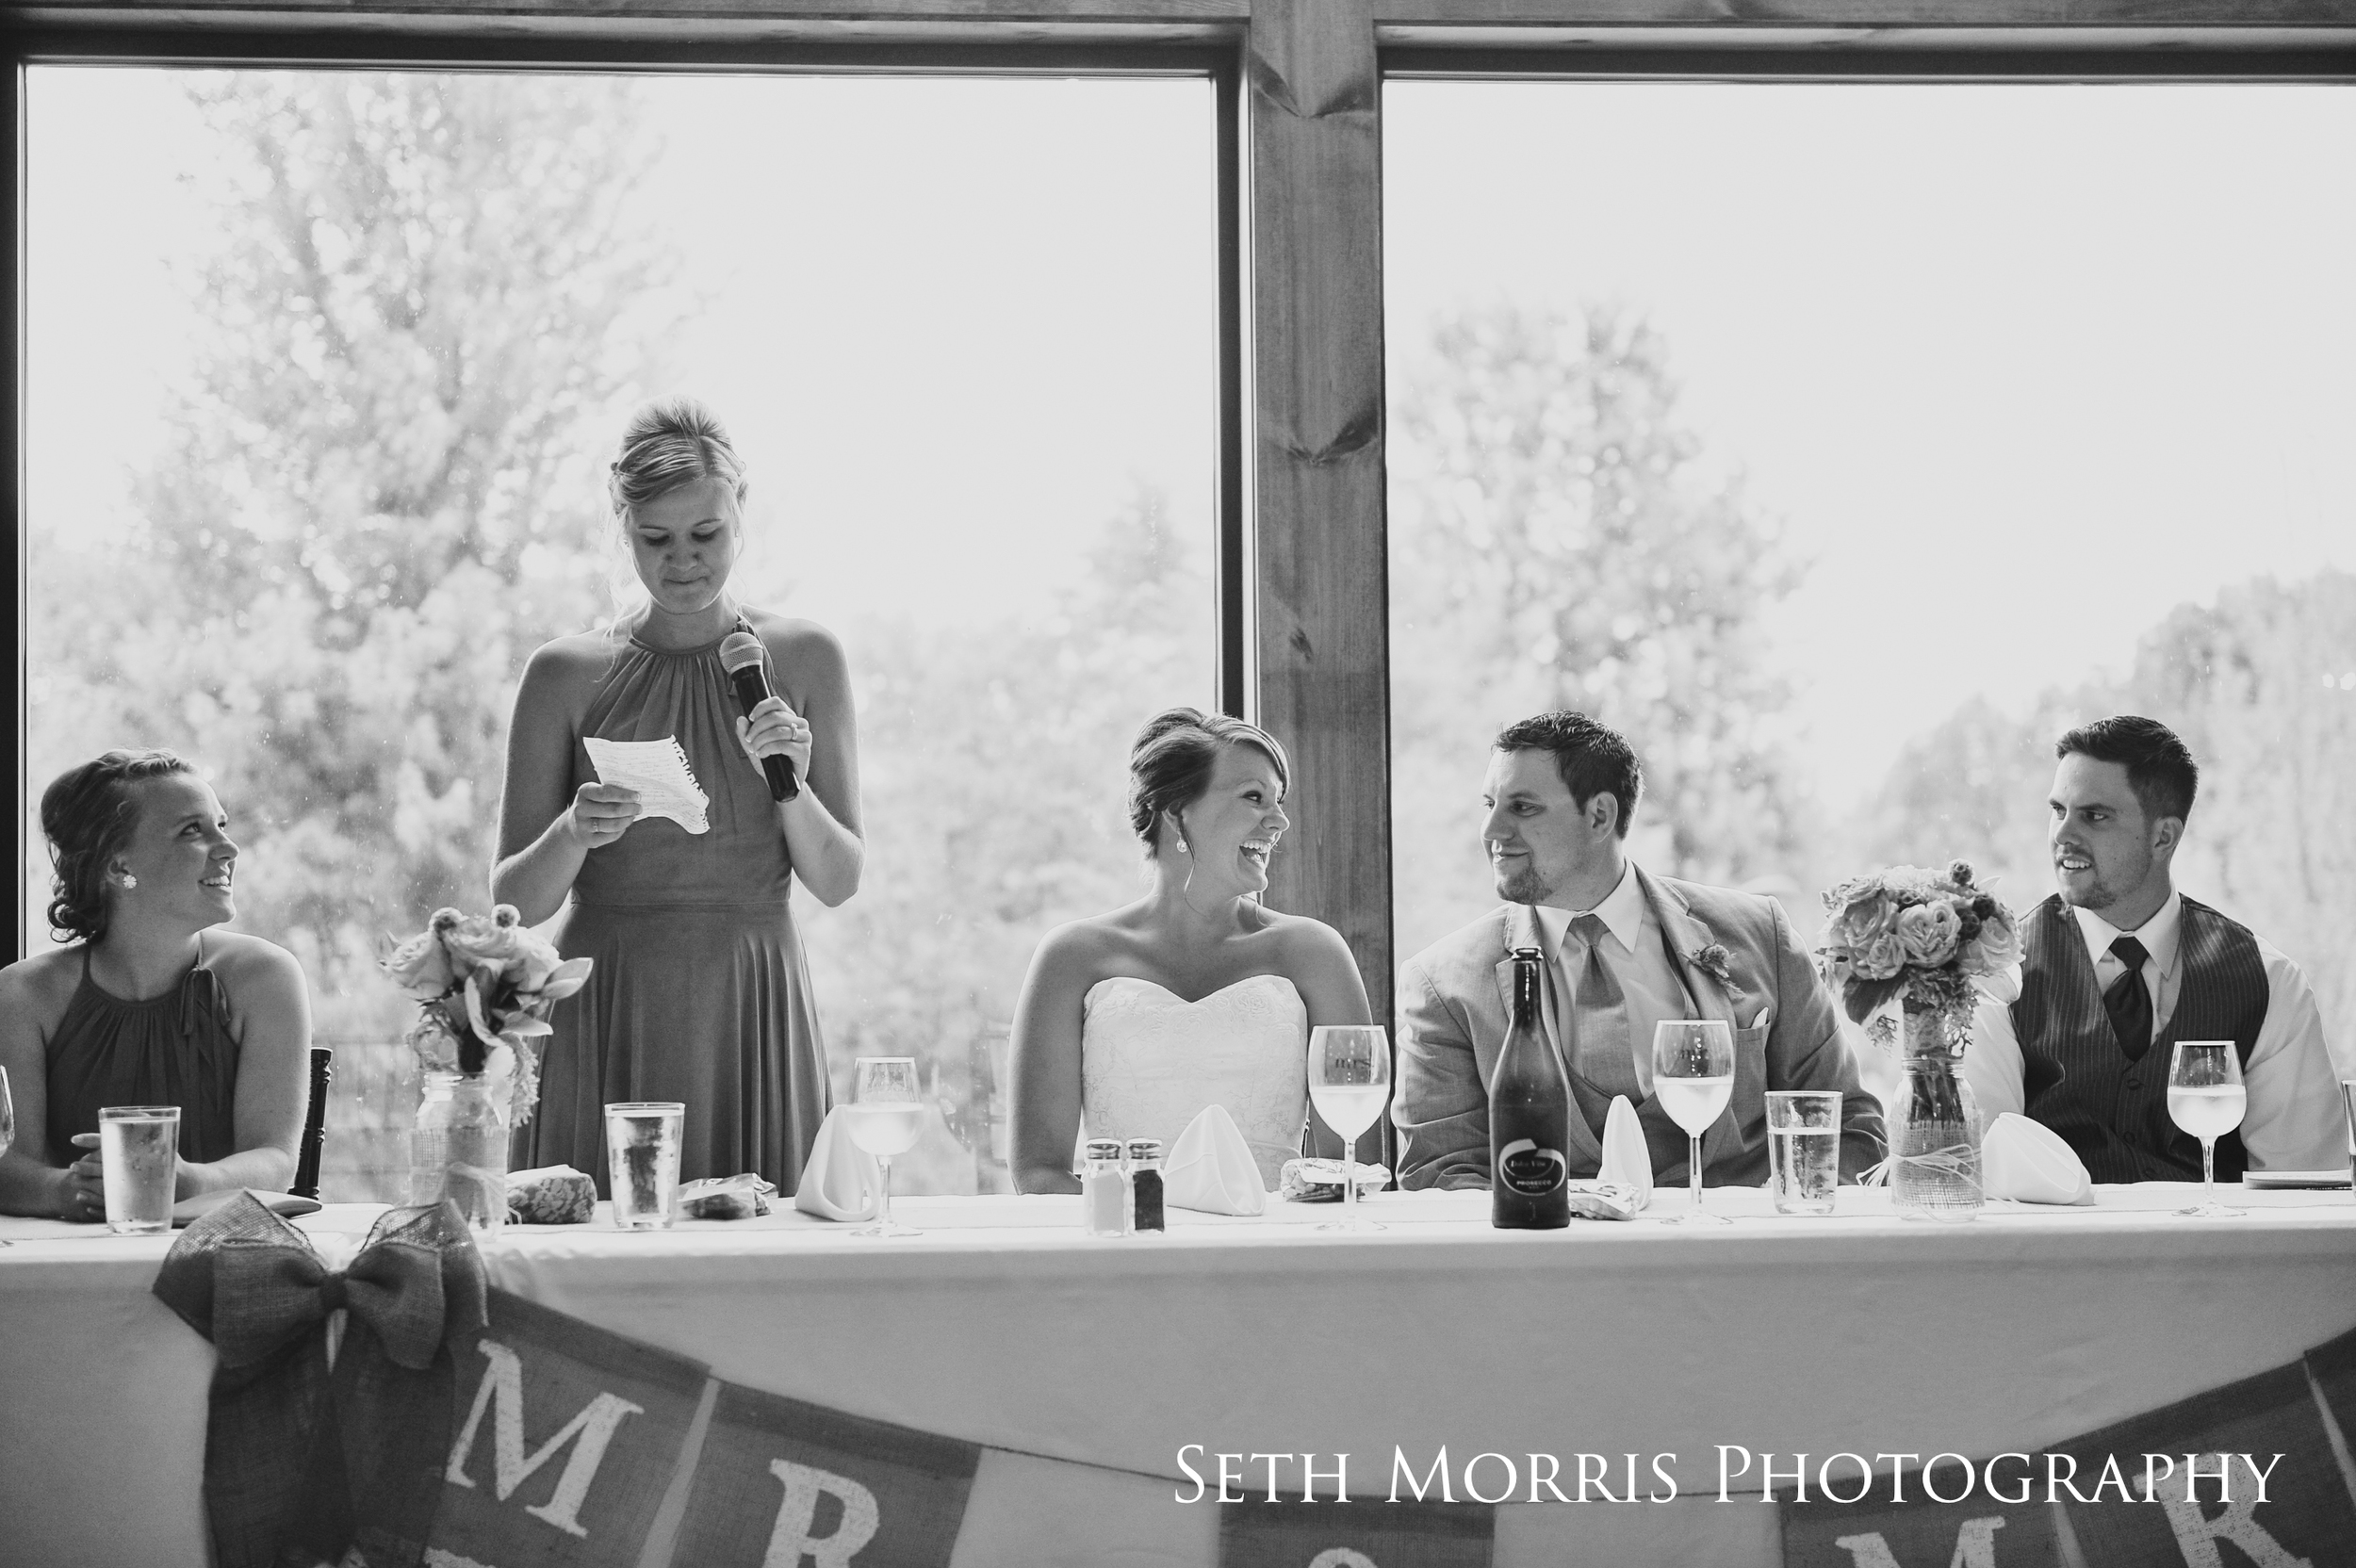 hornbaker-barn-wedding-photo-princeton-photographer-61.jpg